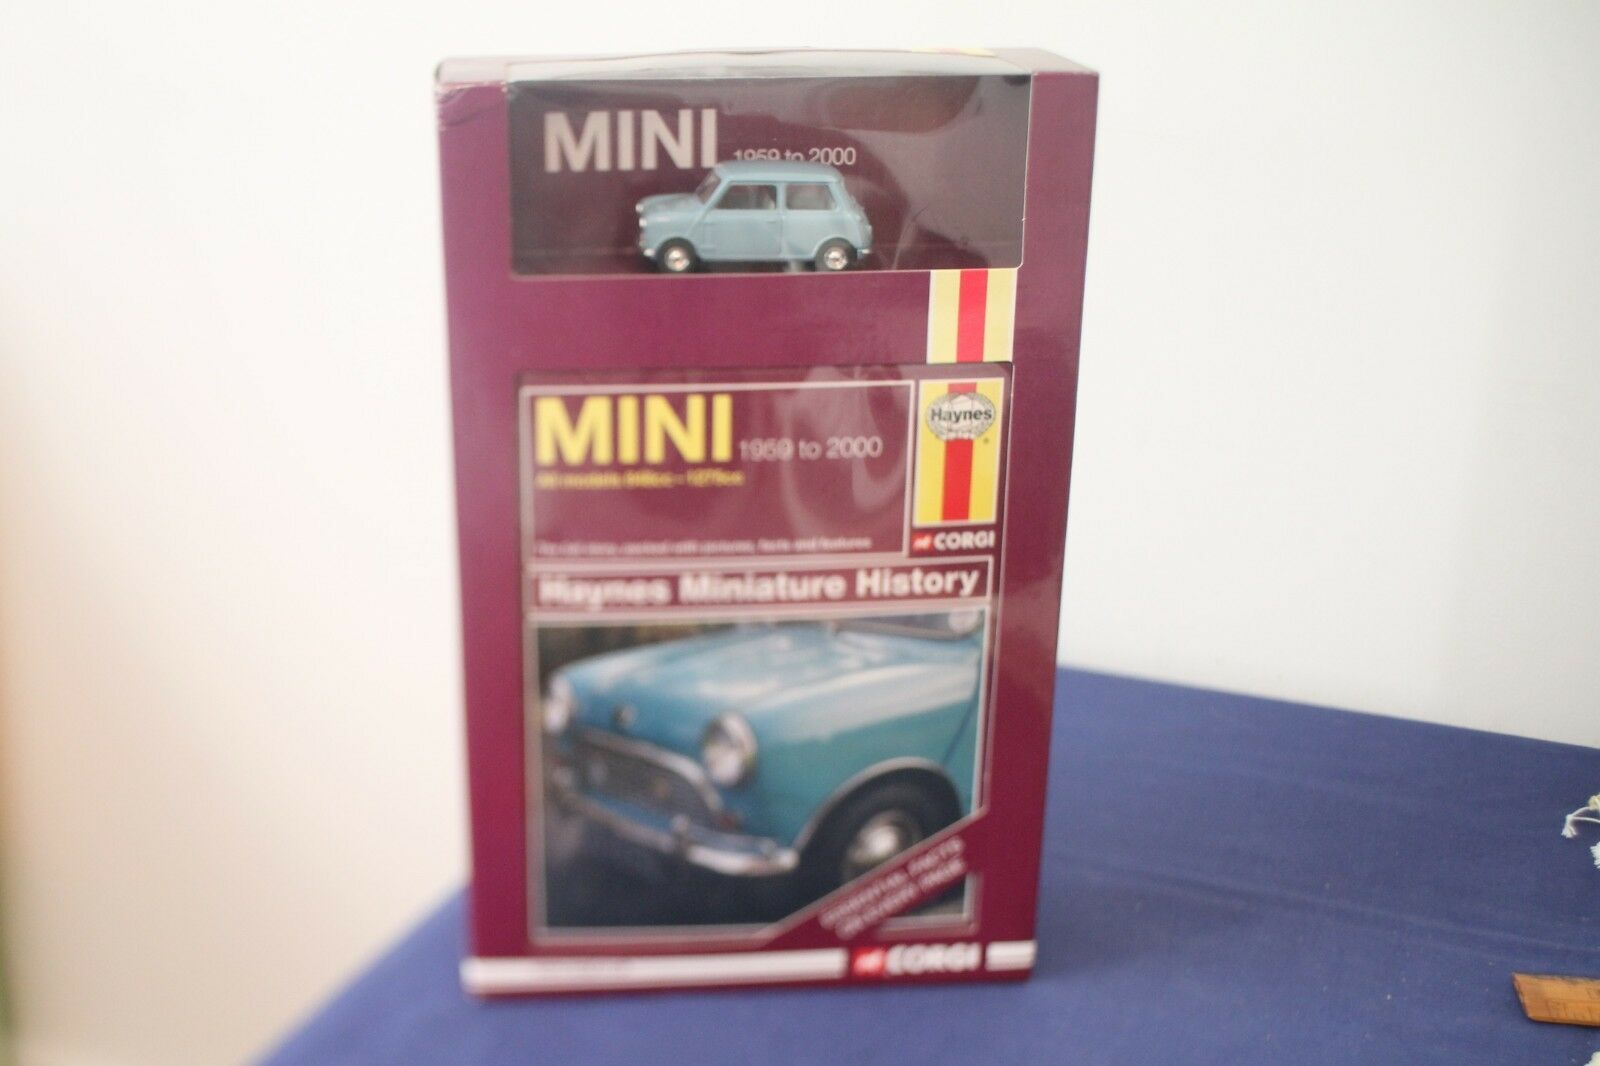 Corgi Haynes Miniature History Mini 1959 to 2000 Model Car